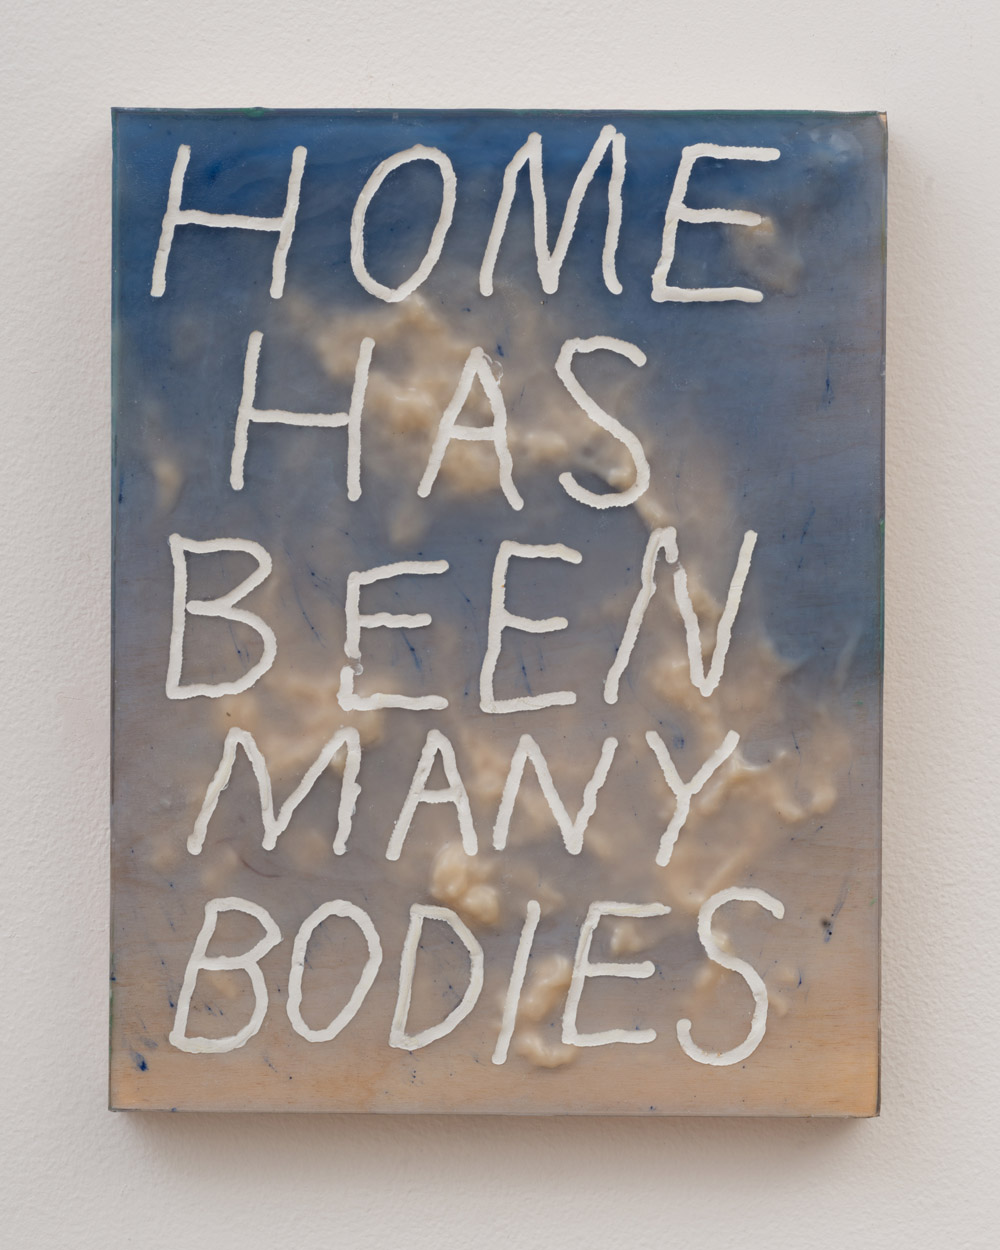 """<p><span class=""""name"""">Tommy Coleman</span><br><em>Home Has Been Many Bodies</em><span class='media'>UV resistant epoxy resin, modeling epoxy, and pigment on panel</span>11 x 8.5 in (27.9 x 21.6 cm)<br>2018<br><a class='inquire' href='mailto:info@gildargallery.com?subject=Artwork Inquiry TCOL0006&body=I am interested in finding out more about Home Has Been Many Bodies by Tommy Coleman'>Inquire</a></p>"""